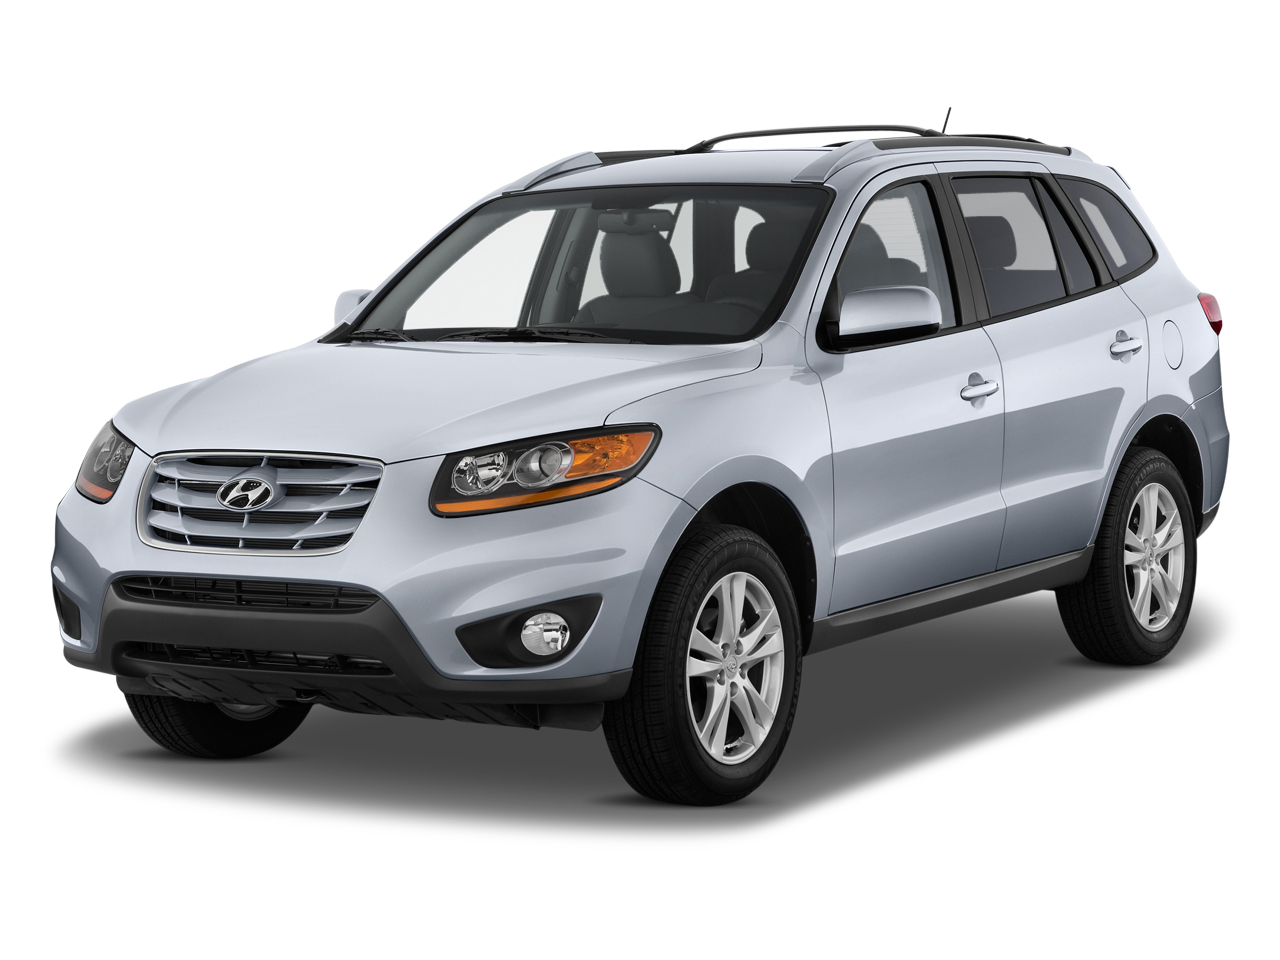 2010 hyundai santa fe review ratings specs prices and. Black Bedroom Furniture Sets. Home Design Ideas